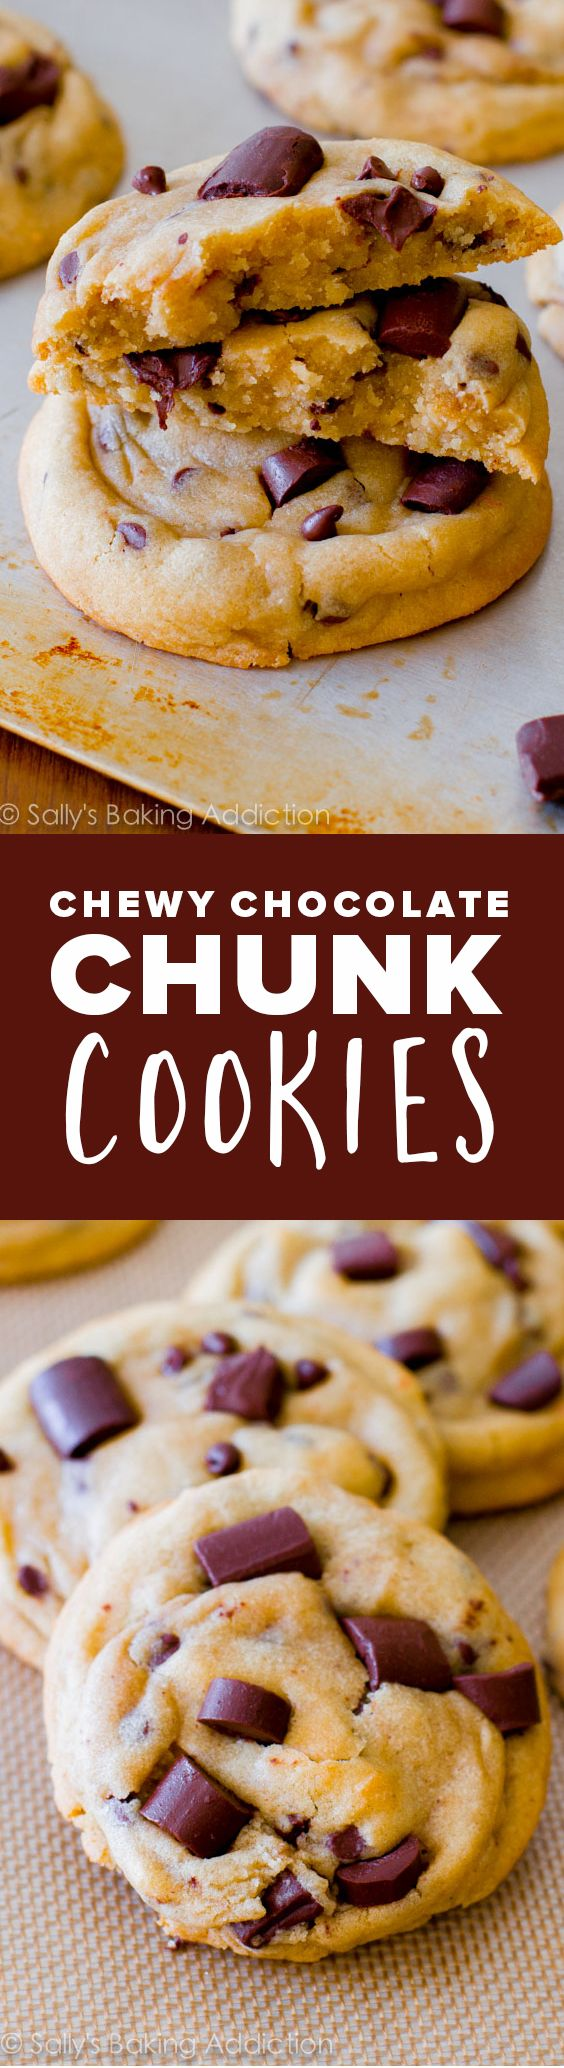 The chewiest, softest, thickest chocolate chip cookies with cornstarch and extra brown sugar for softness! Easy cookie recipe http://sallysbakingaddiction.com/2013/05/13/chewy-chocolate-chunk-cookies/